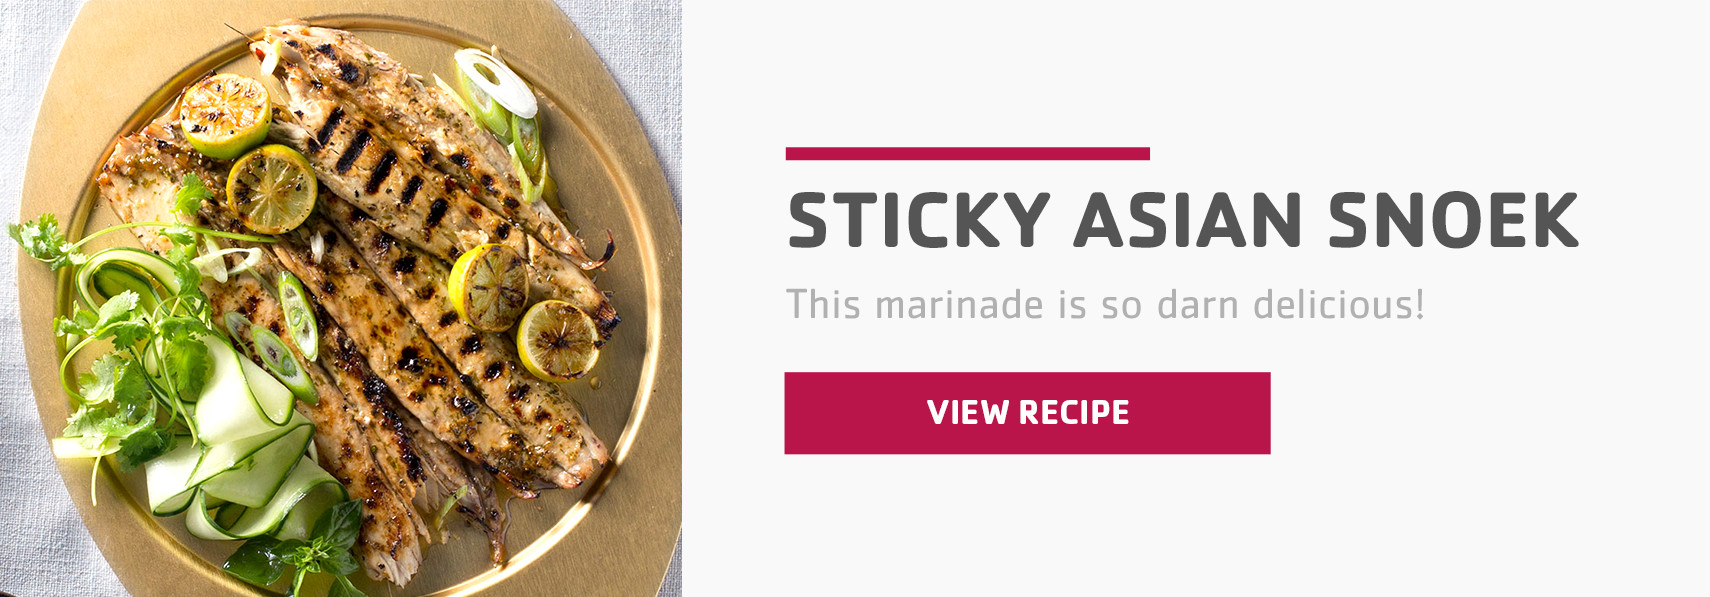 Sticky Asian snoek recipe listing page banner.jpg